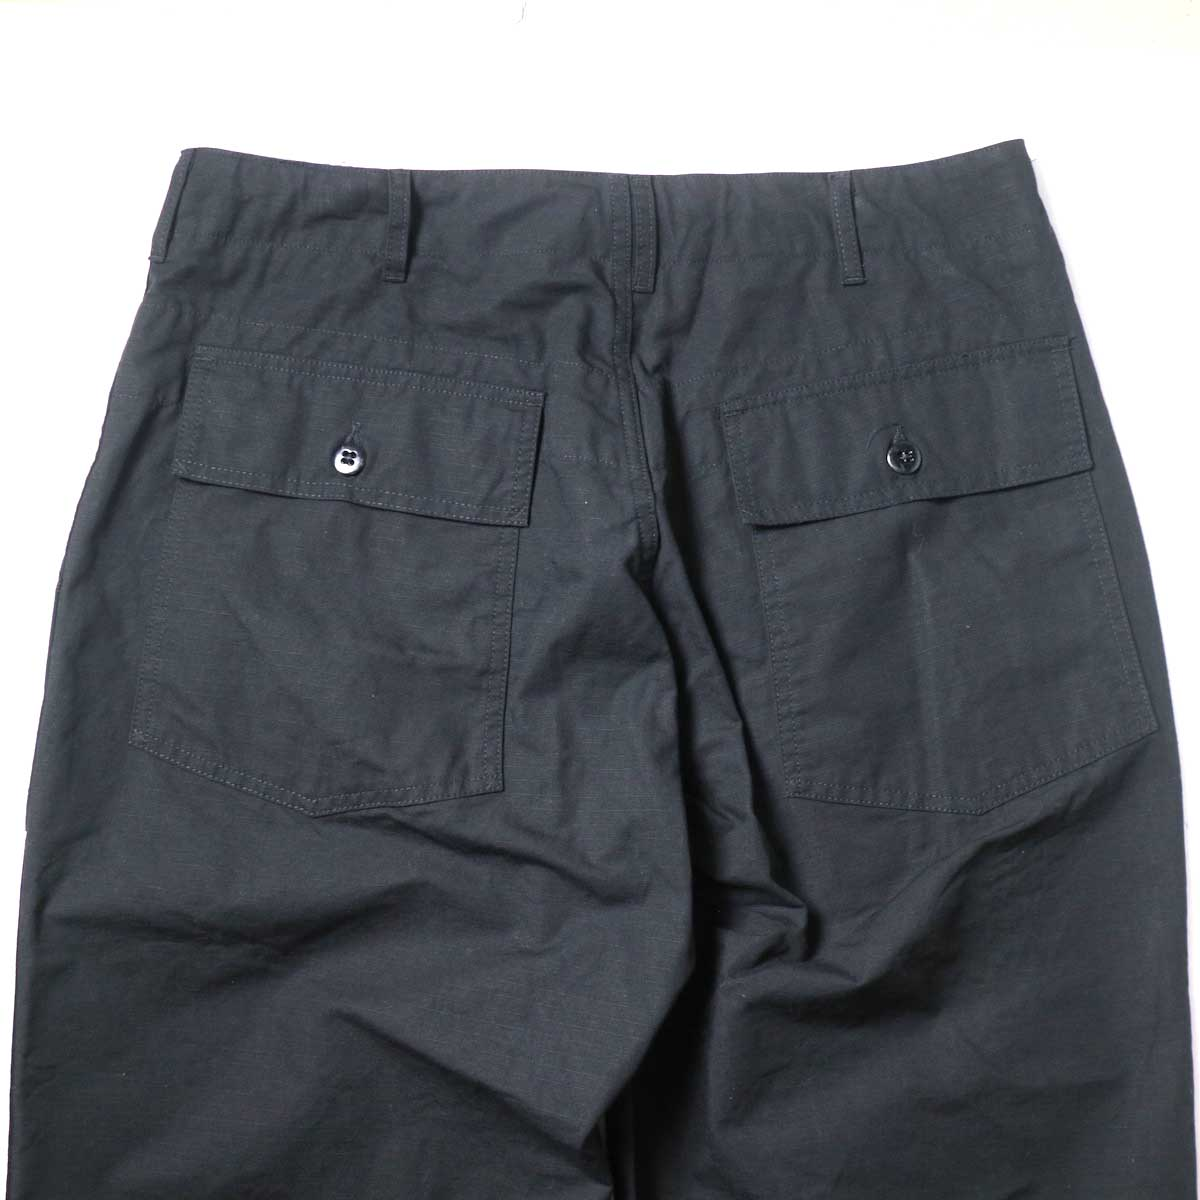 Engineered Garments / Fatigue Pant - Cotton Ripstop (Black)ヒップポケット